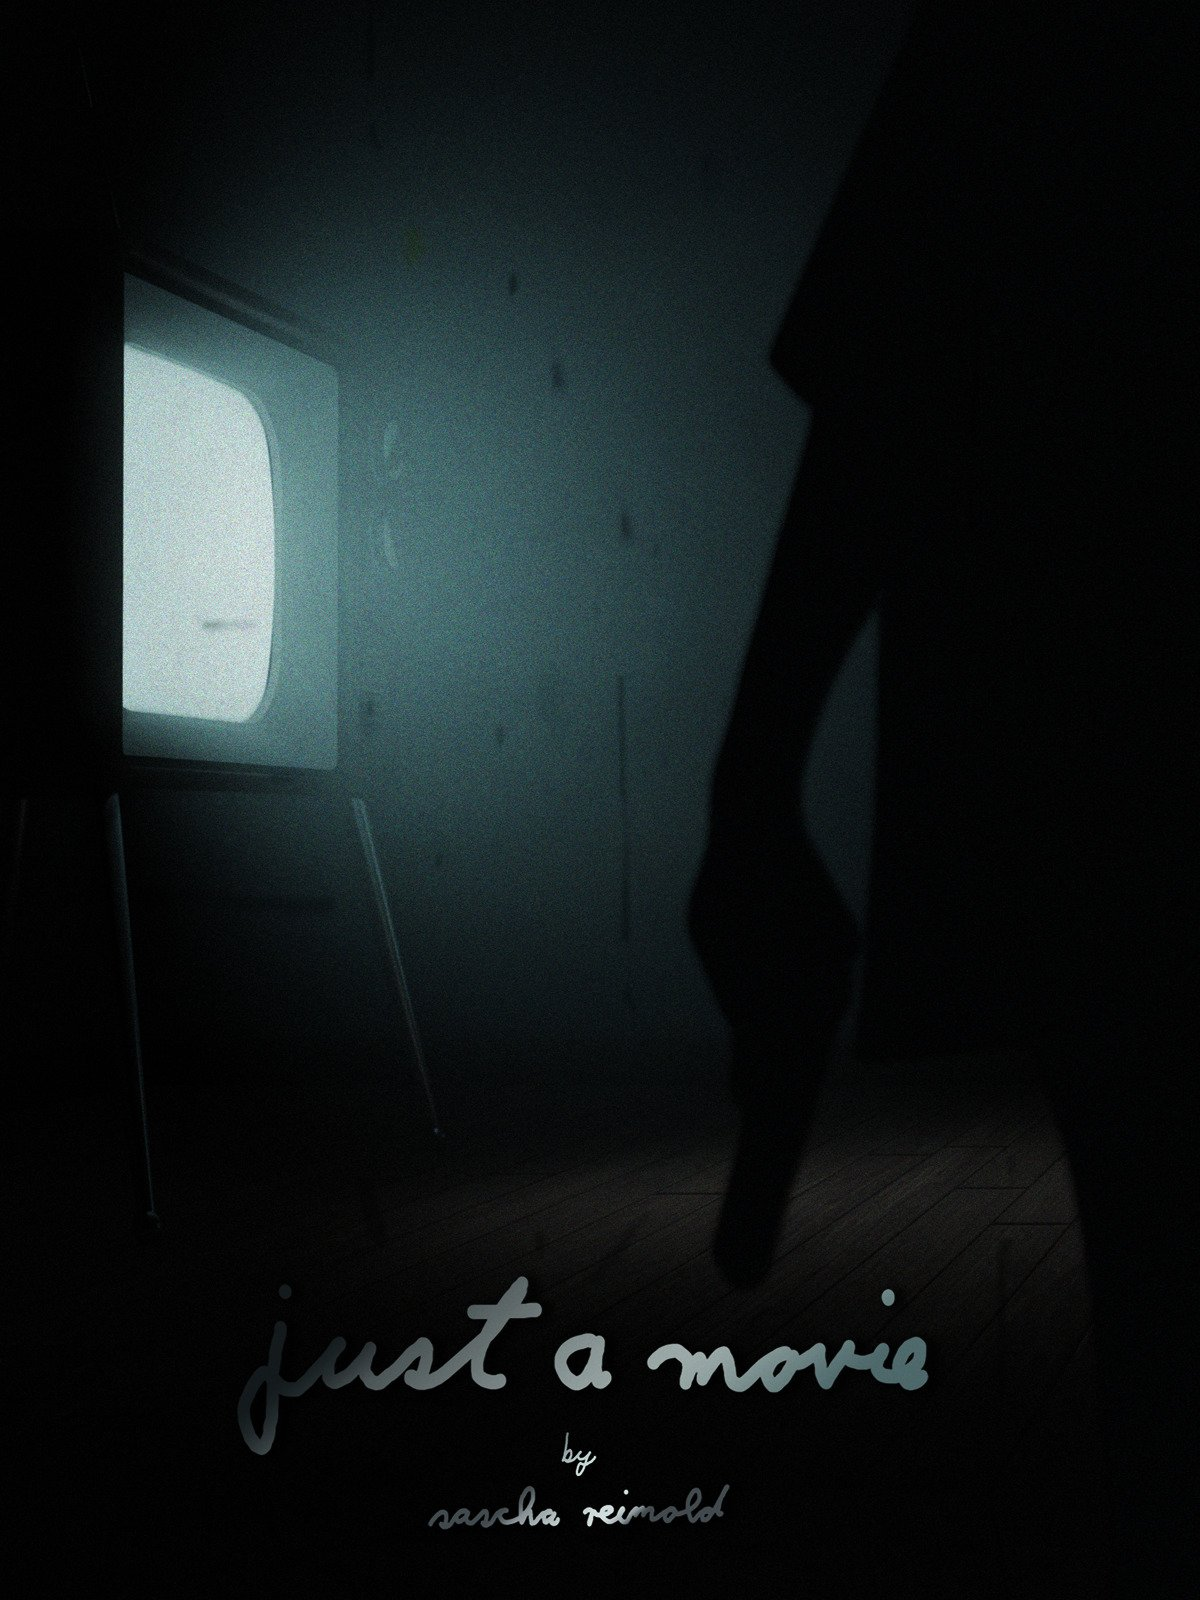 just a movie